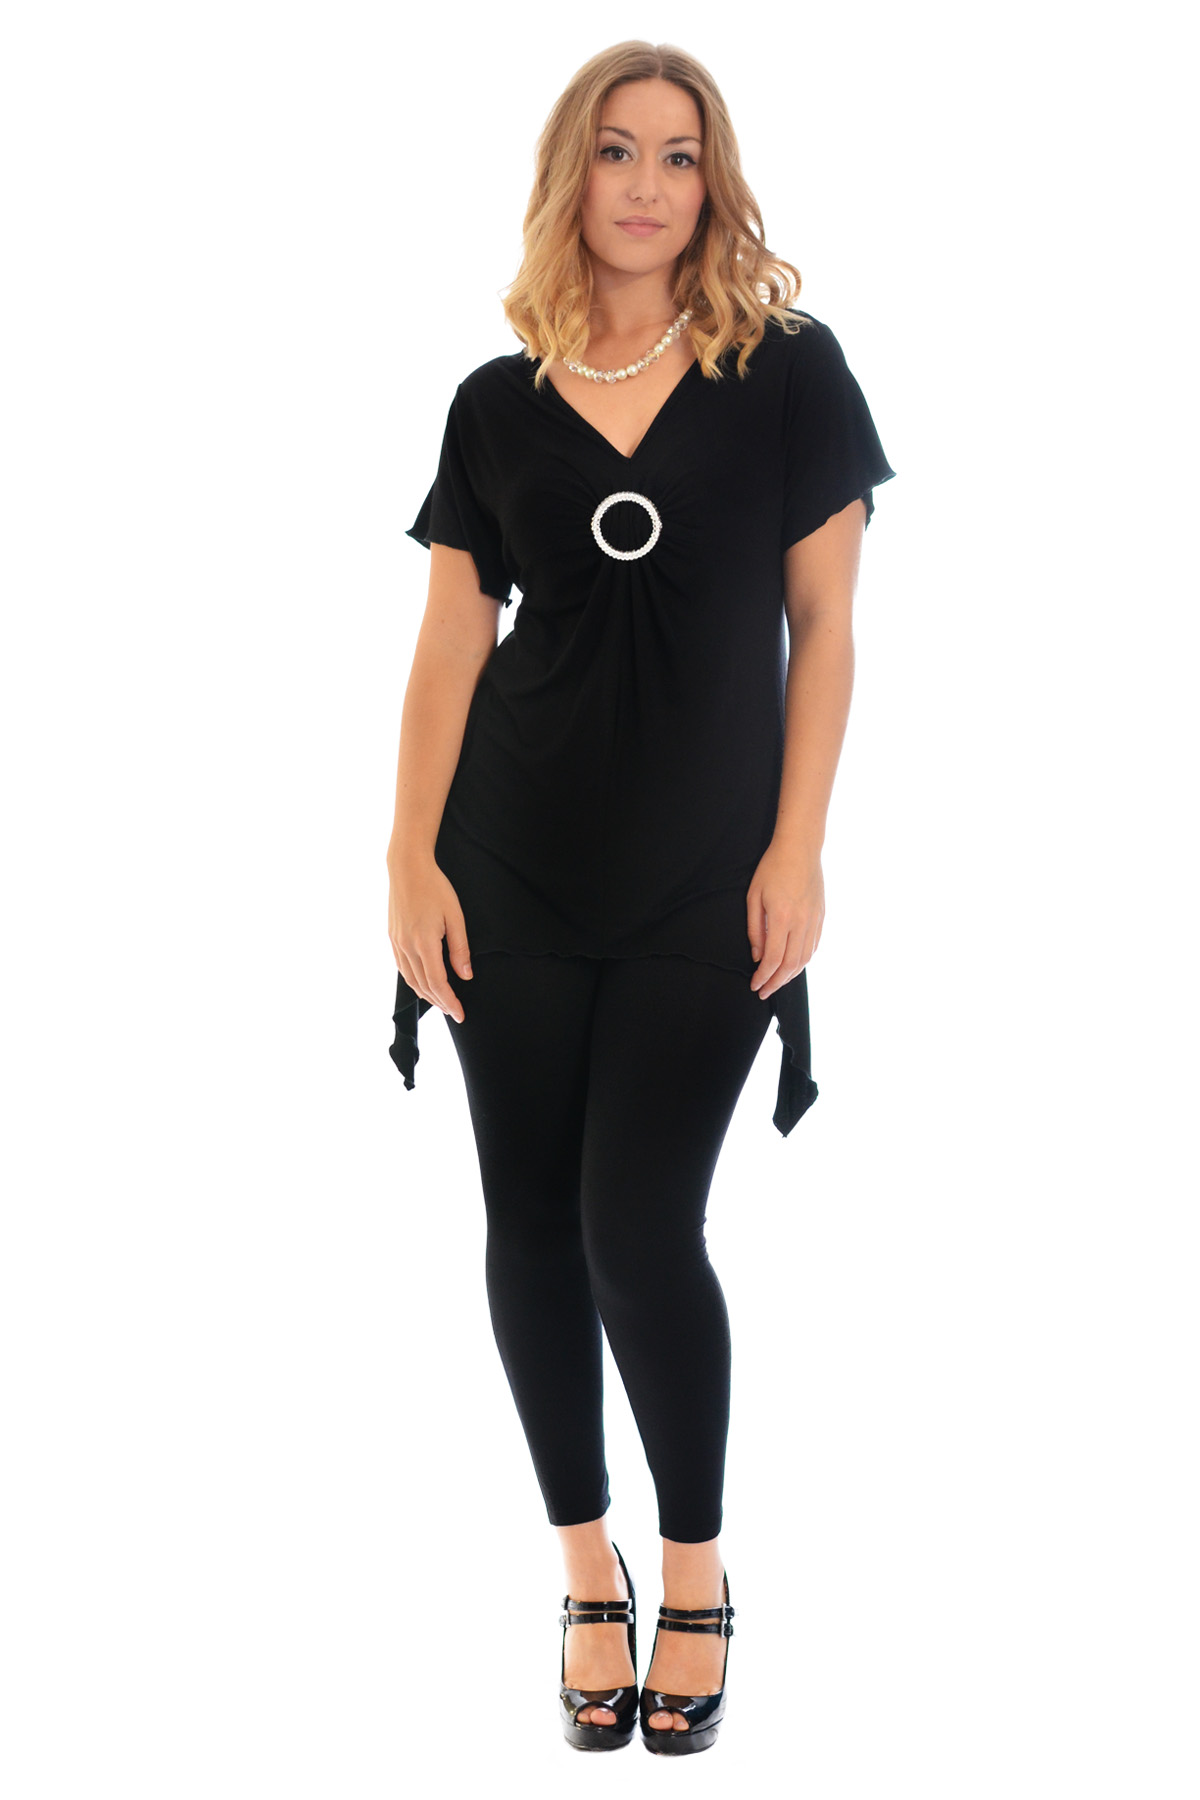 New-Womens-Plus-Size-Top-Ladies-T-Shirt-Buckle-Stud-A-Line-Asymmetric-Nouvelle thumbnail 12